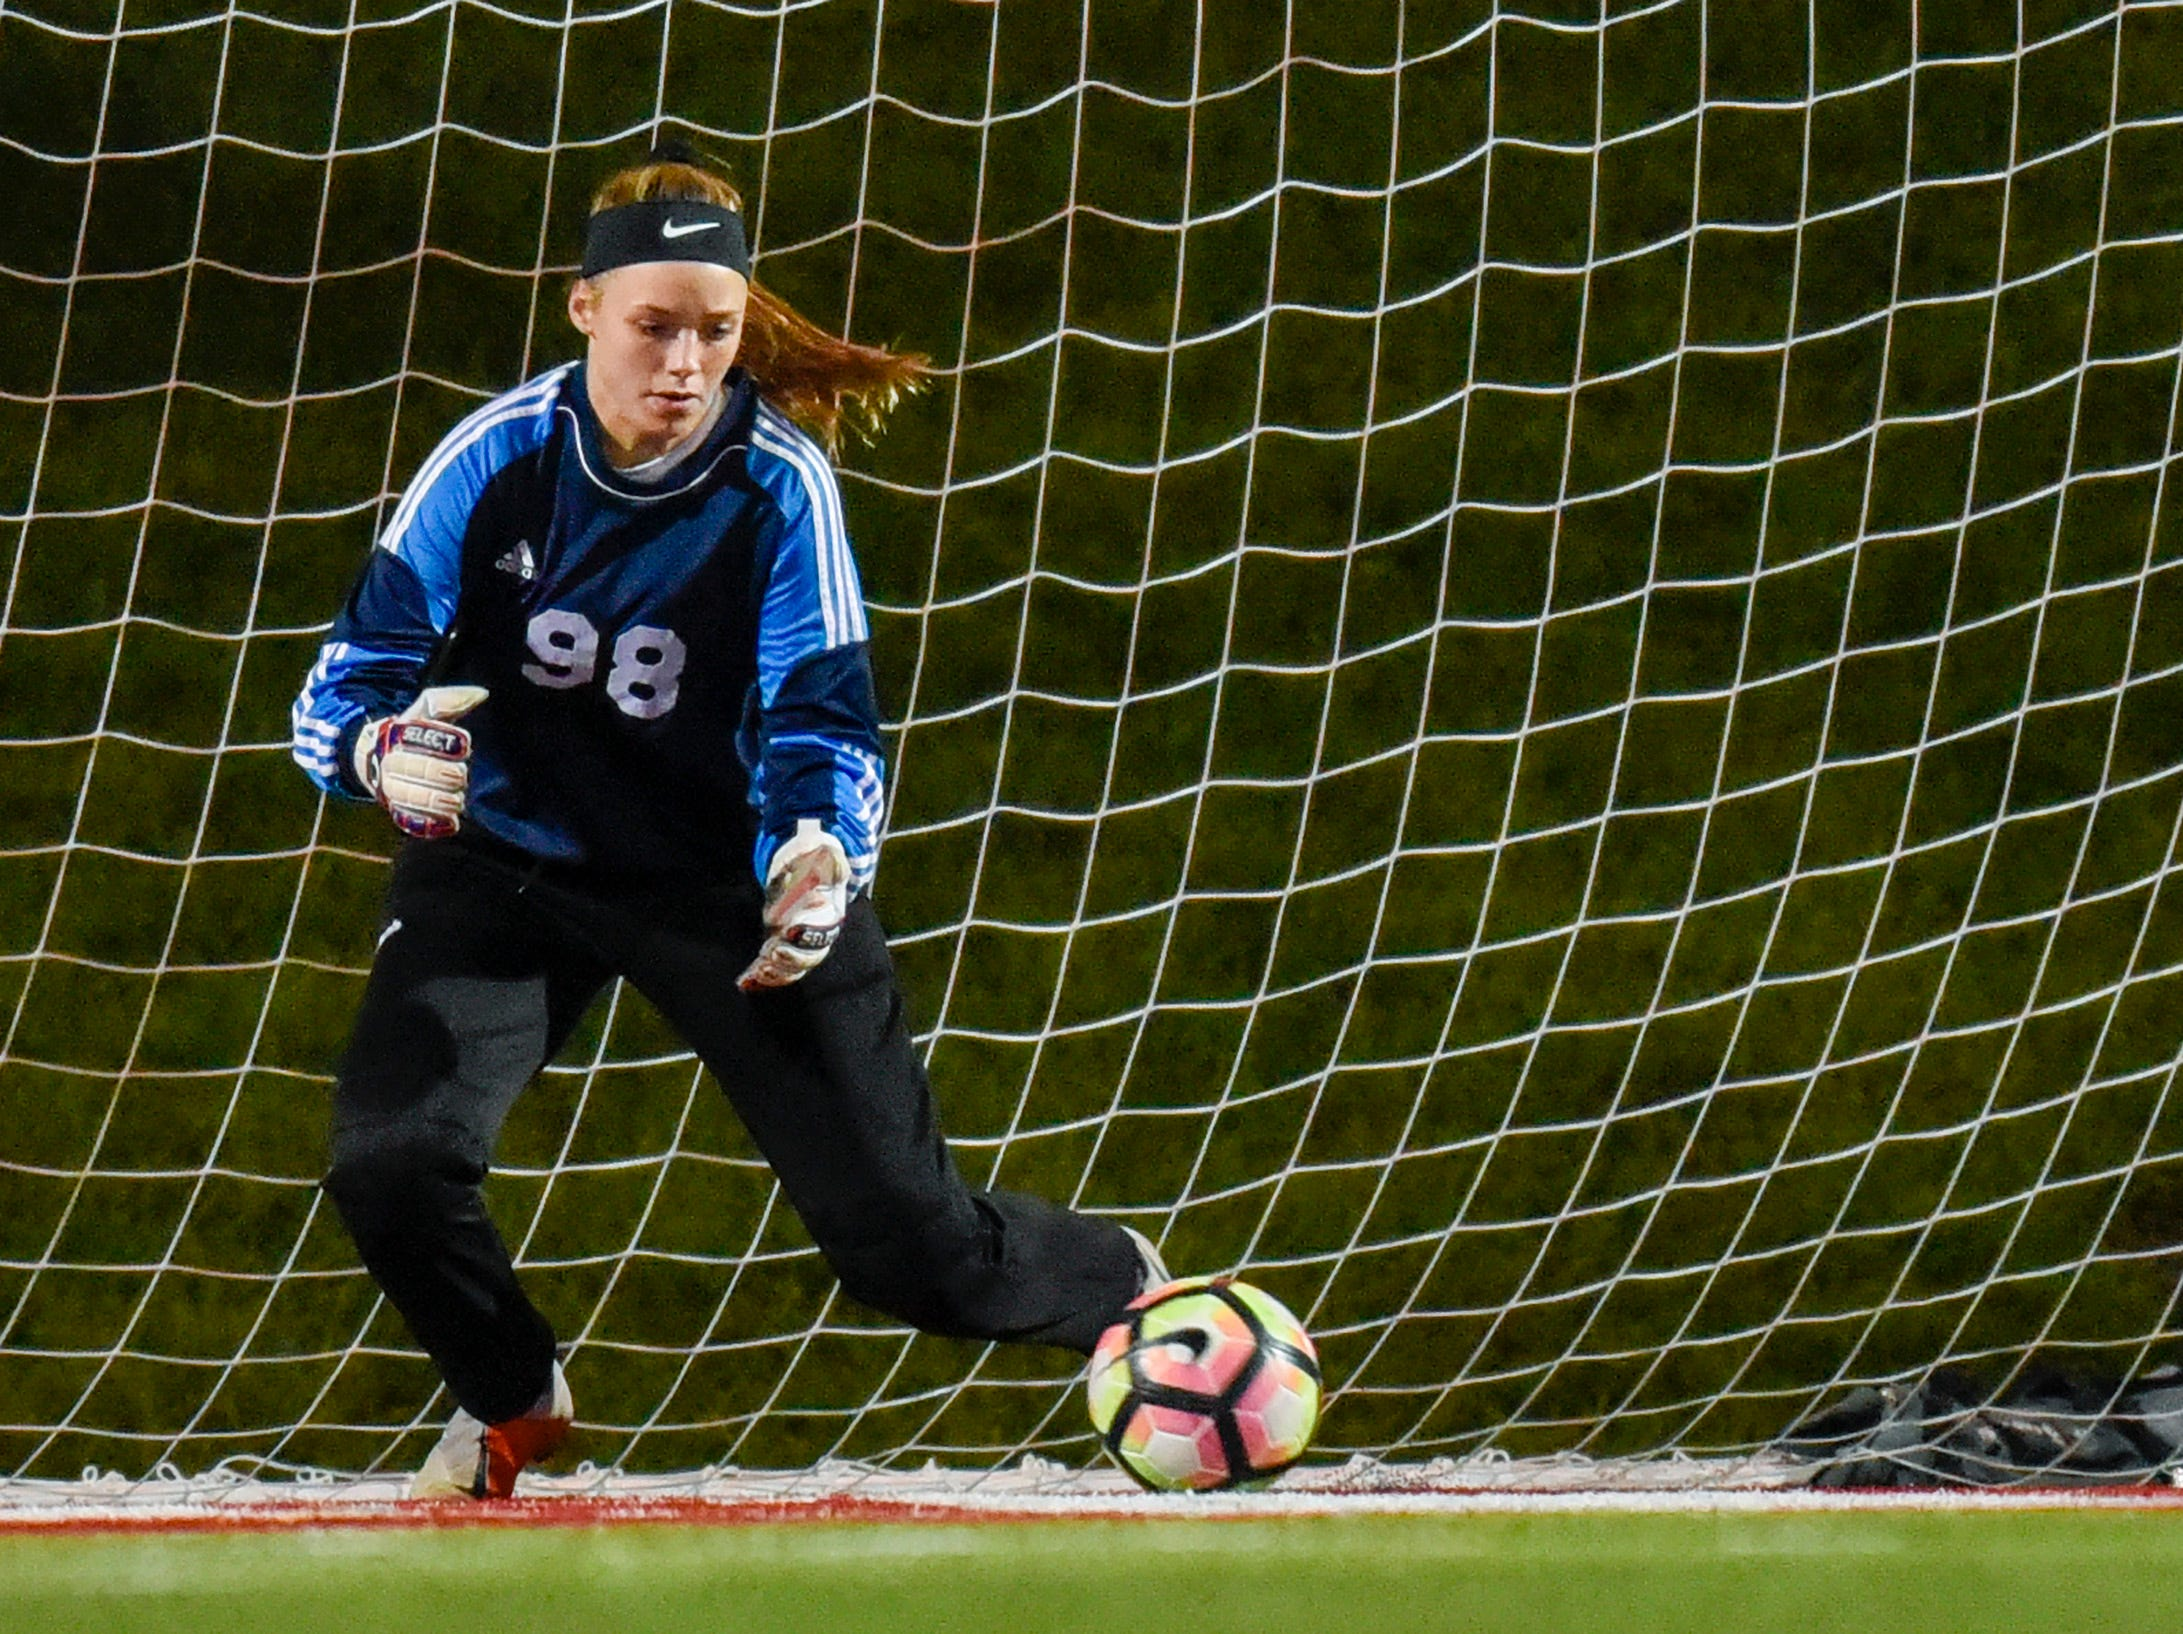 Apollo goalie Megan Vasek makes a save against Tech during the second half Thursday, Sept. 27, at Husky Stadium.